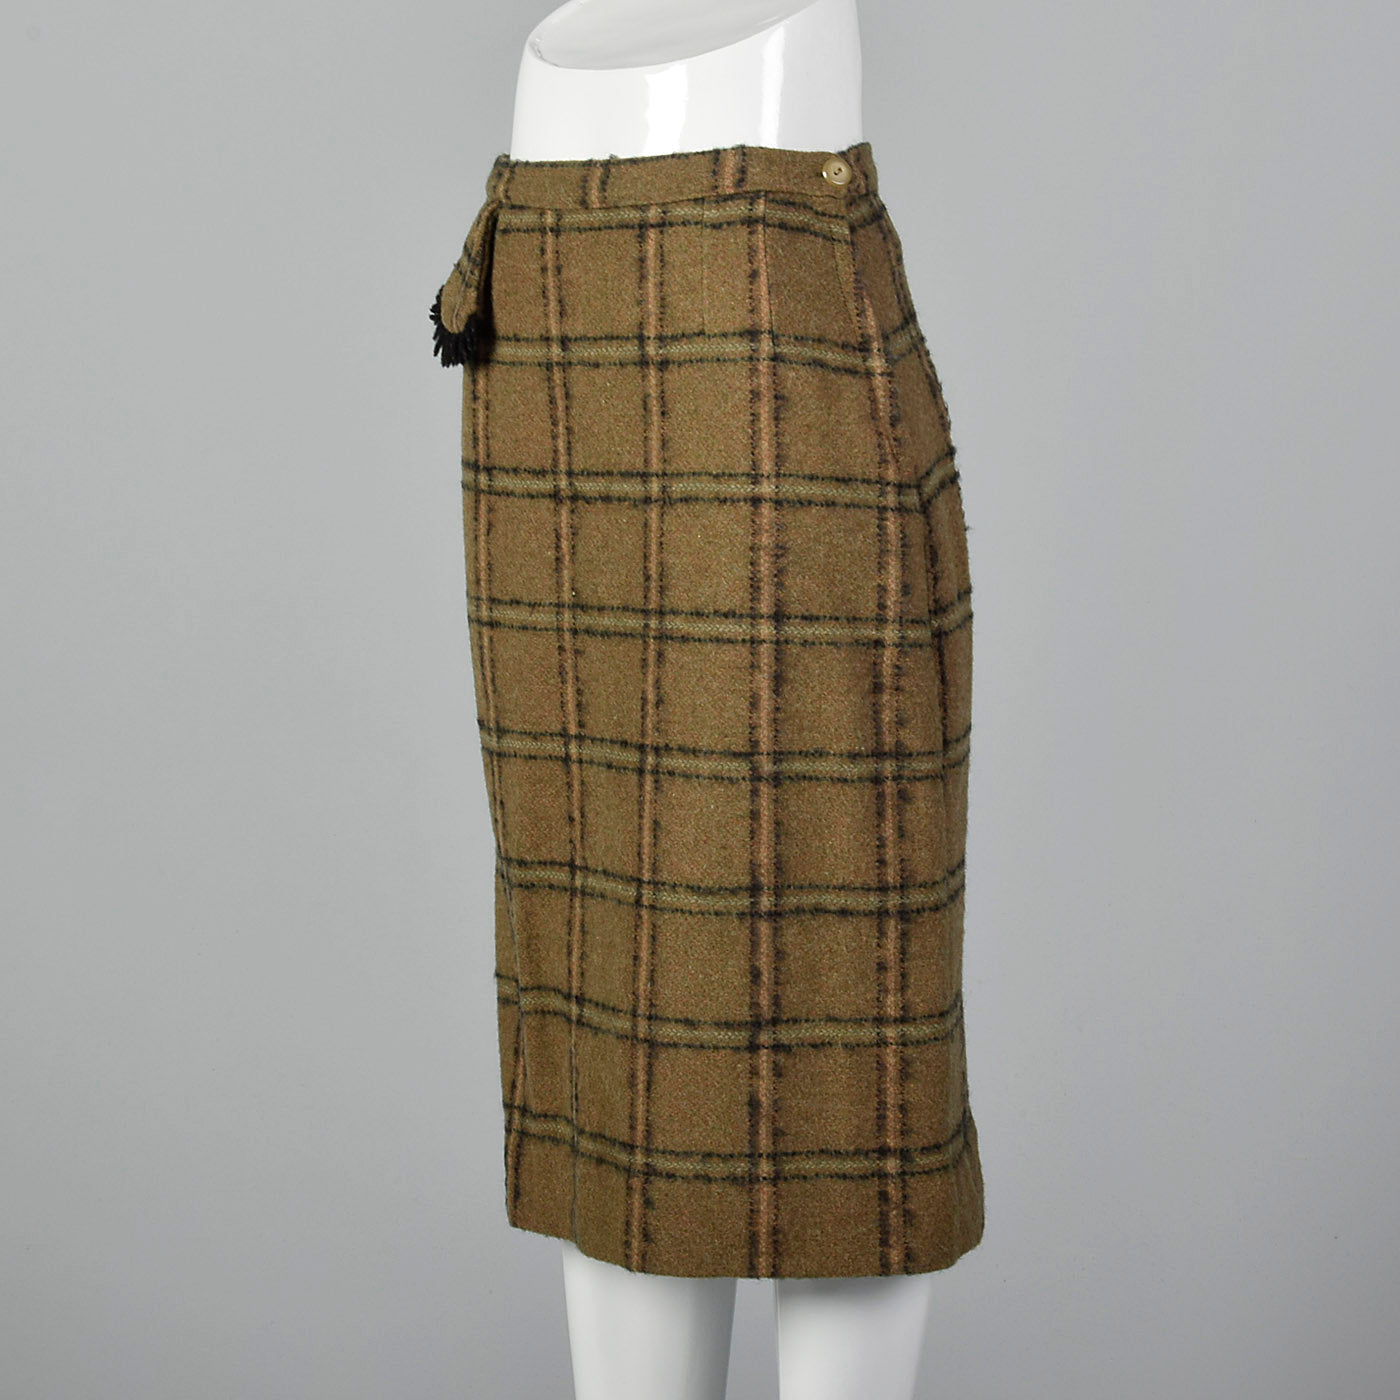 1940s Pencil Skirt in Brown and Green Windowpane Plaid